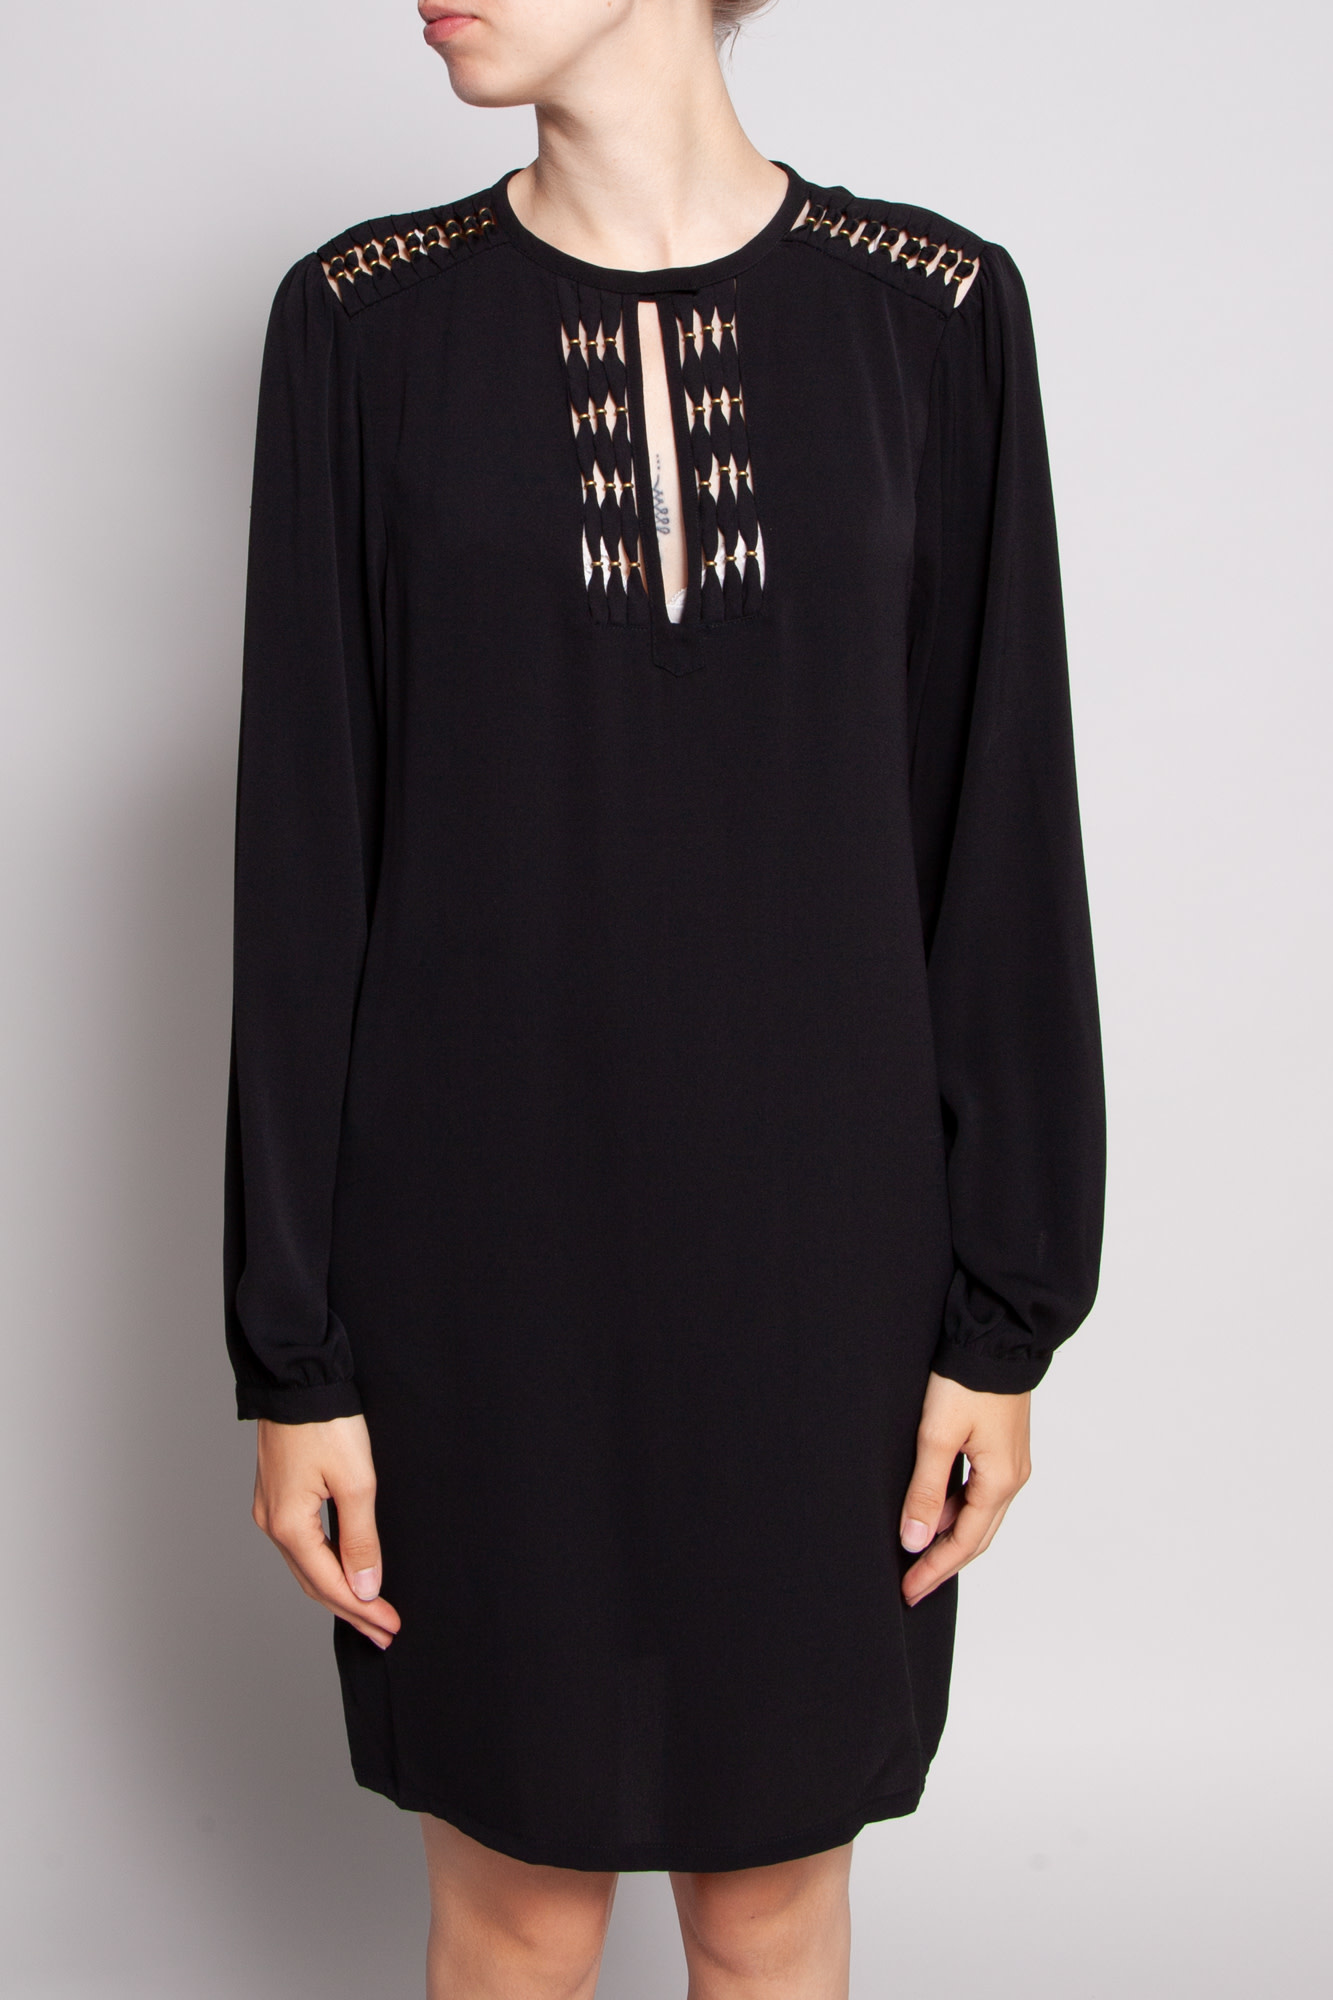 Diane von Furstenberg BLACK SILK DRESS WITH GOLDEN DETAILS